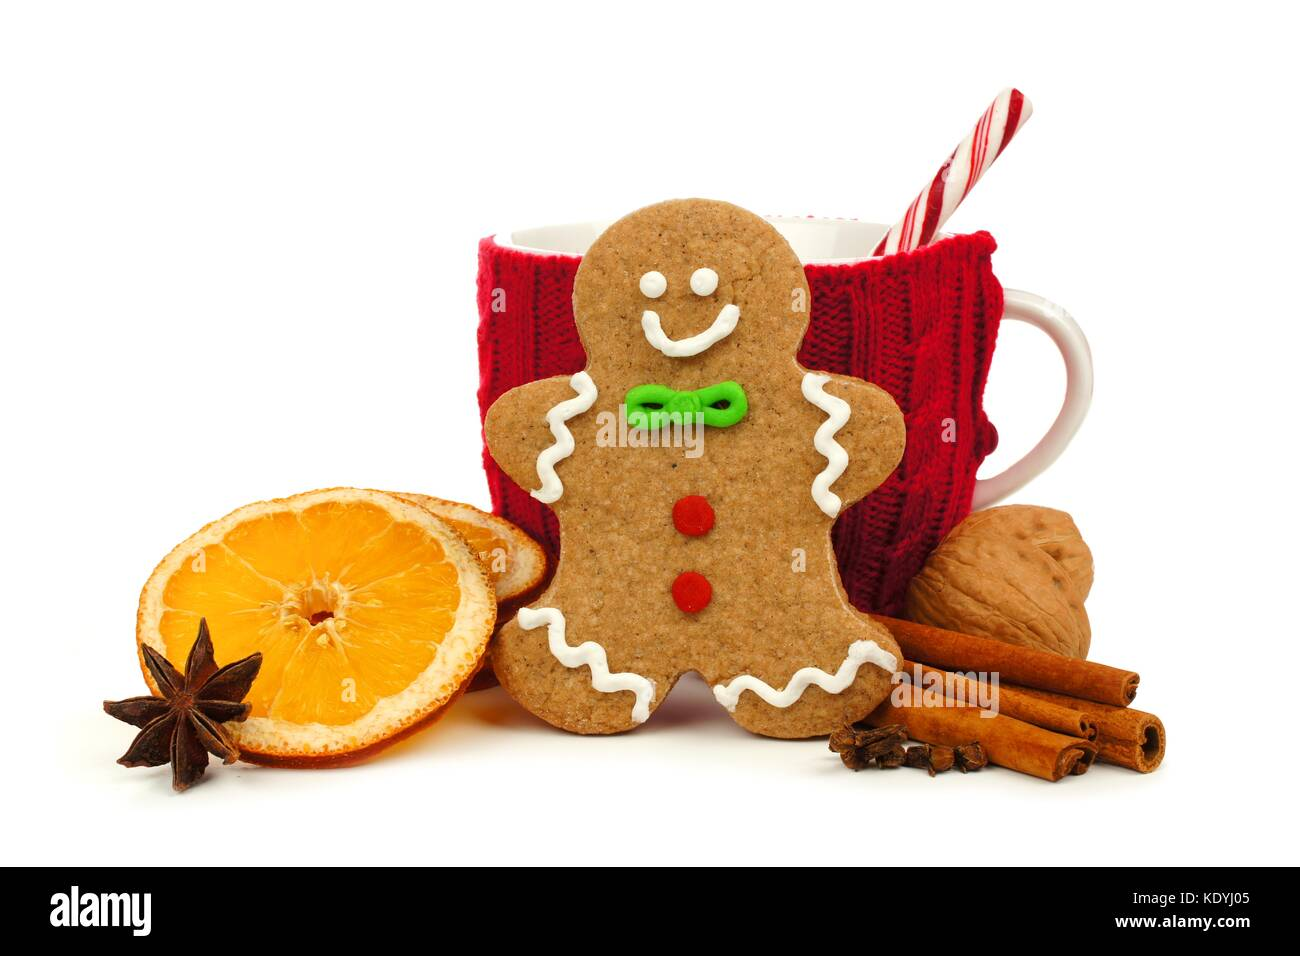 Christmas gingerbread man with festive mug and holiday spices isolated on a white background - Stock Image